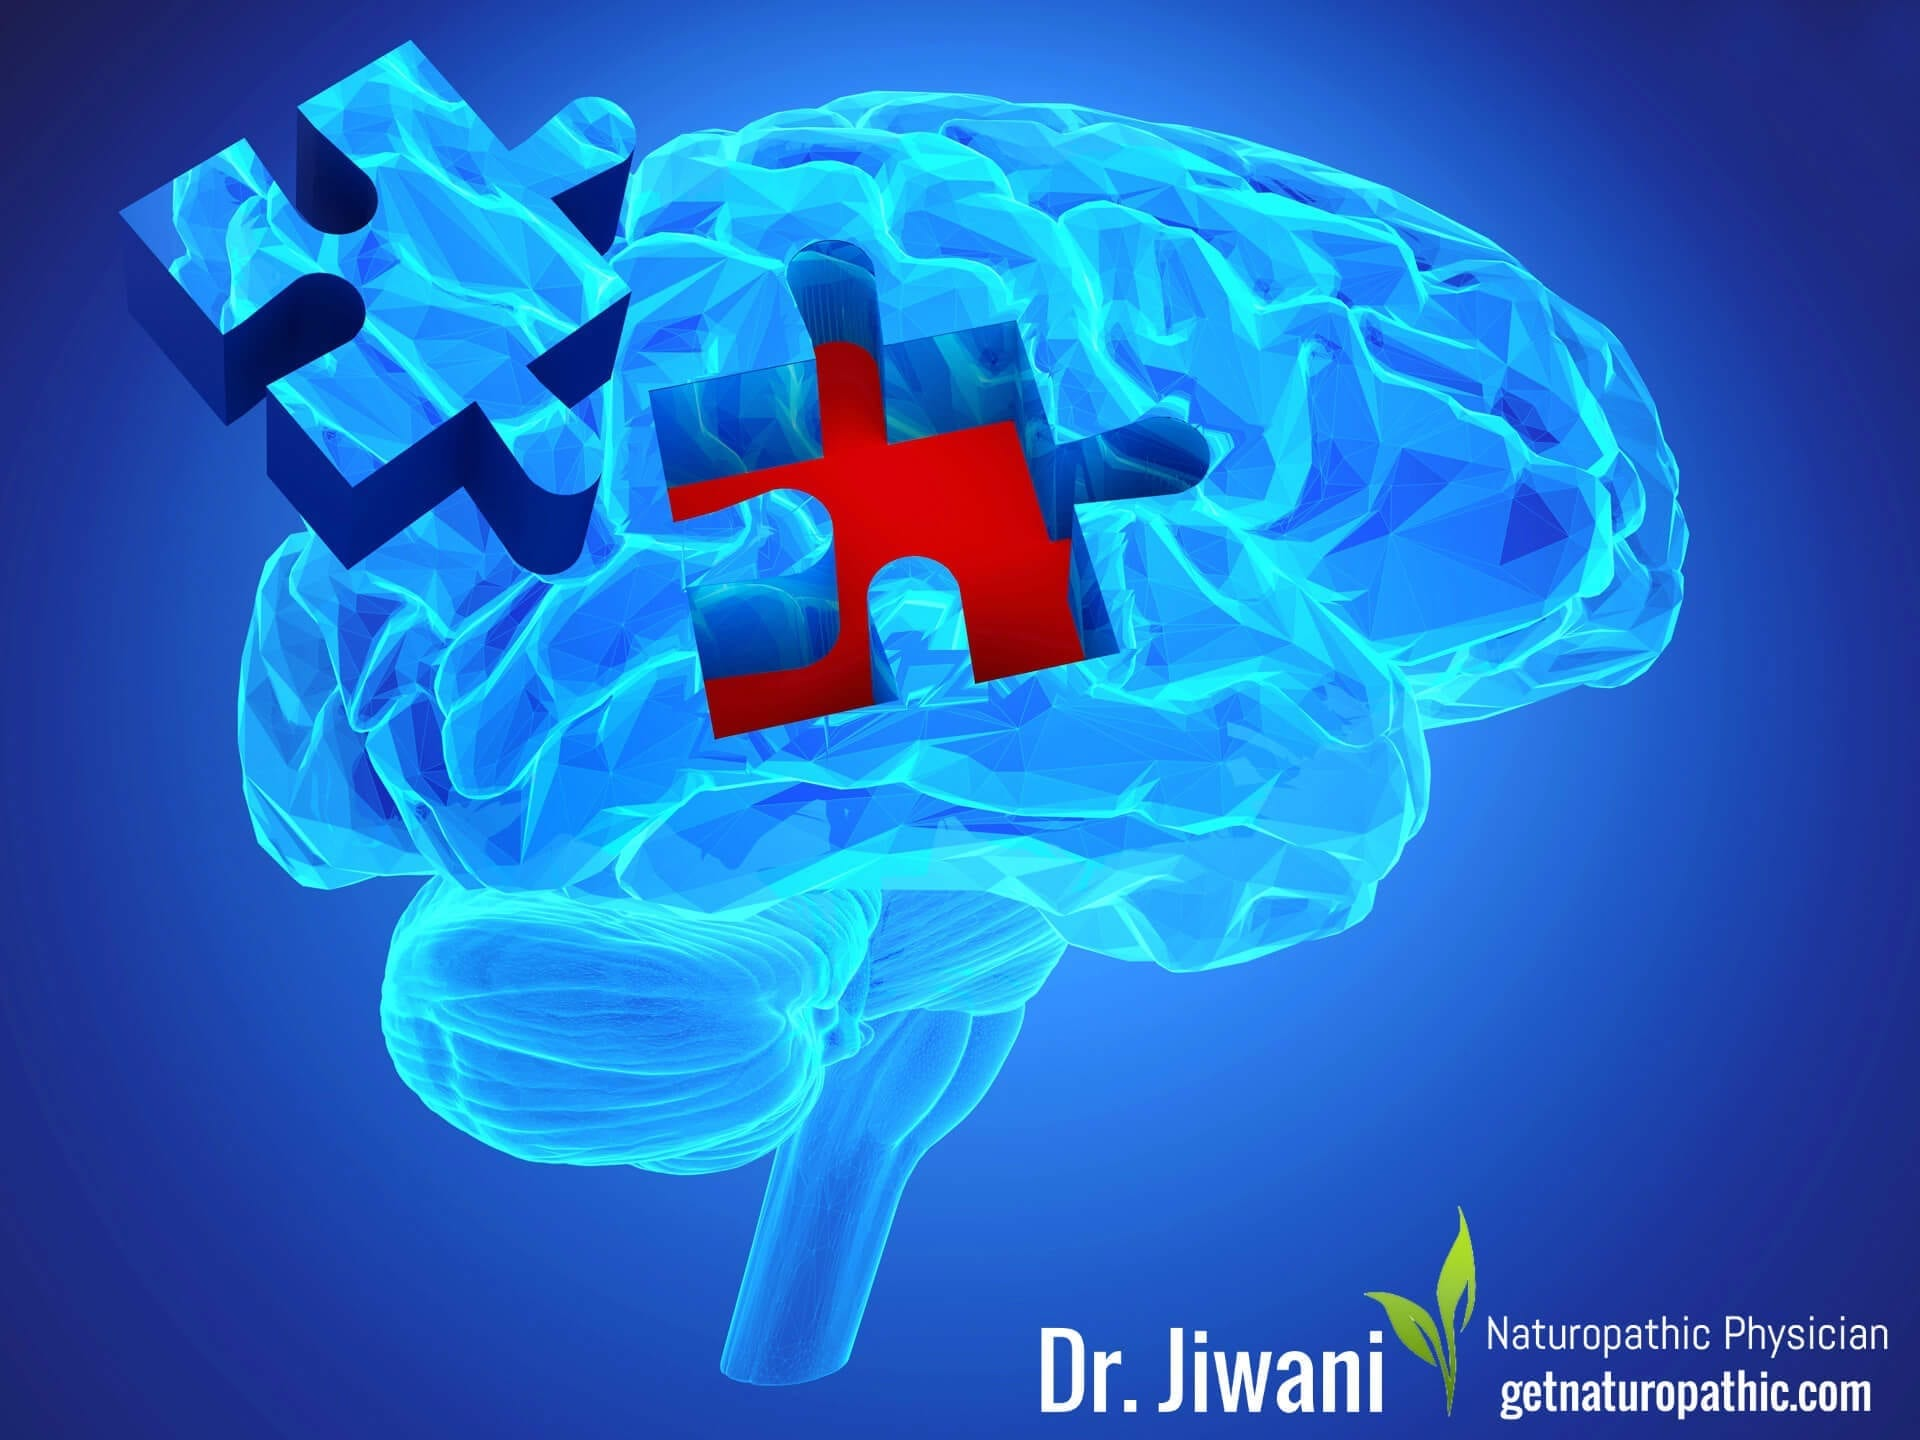 DrJiwani Alzheimer's Sugar the Sweet Poison The Alarming Ways Sugar Damages Your Body & Brain* | Dr. Jiwani's Naturopathic Nuggets Blog